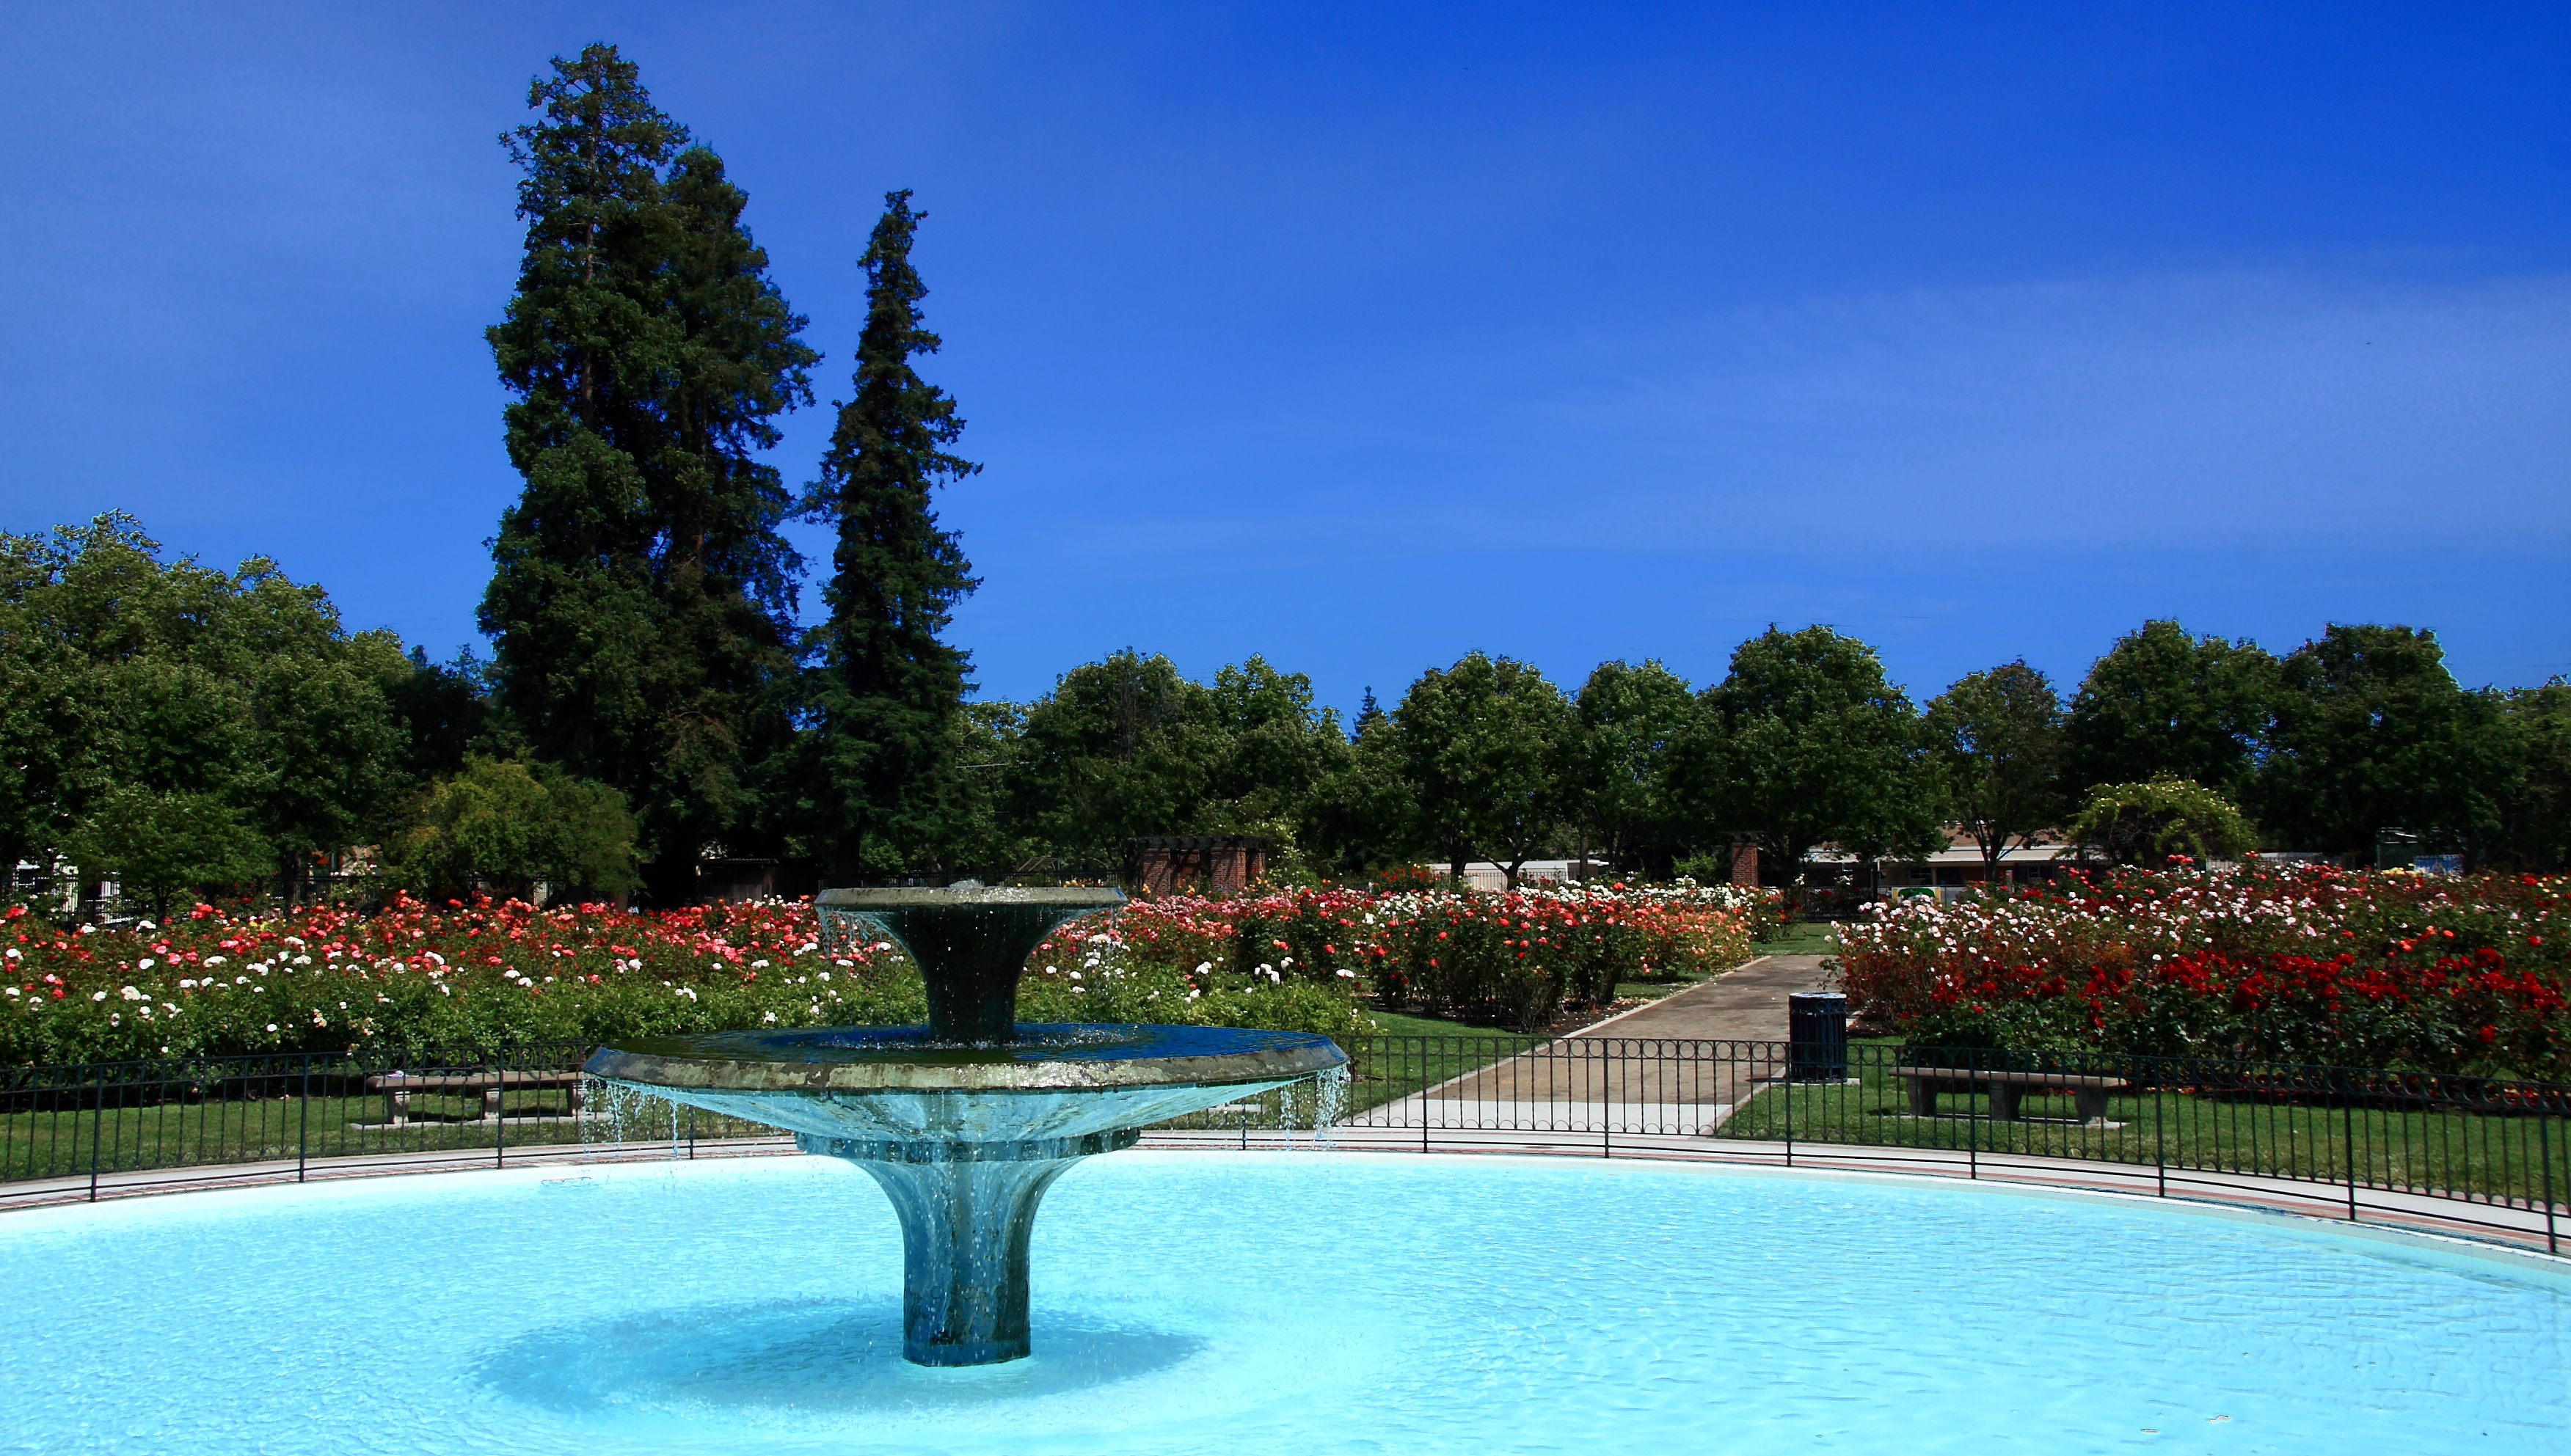 Roses In Garden: File:San Jose Municipal Rose Garden1.jpg